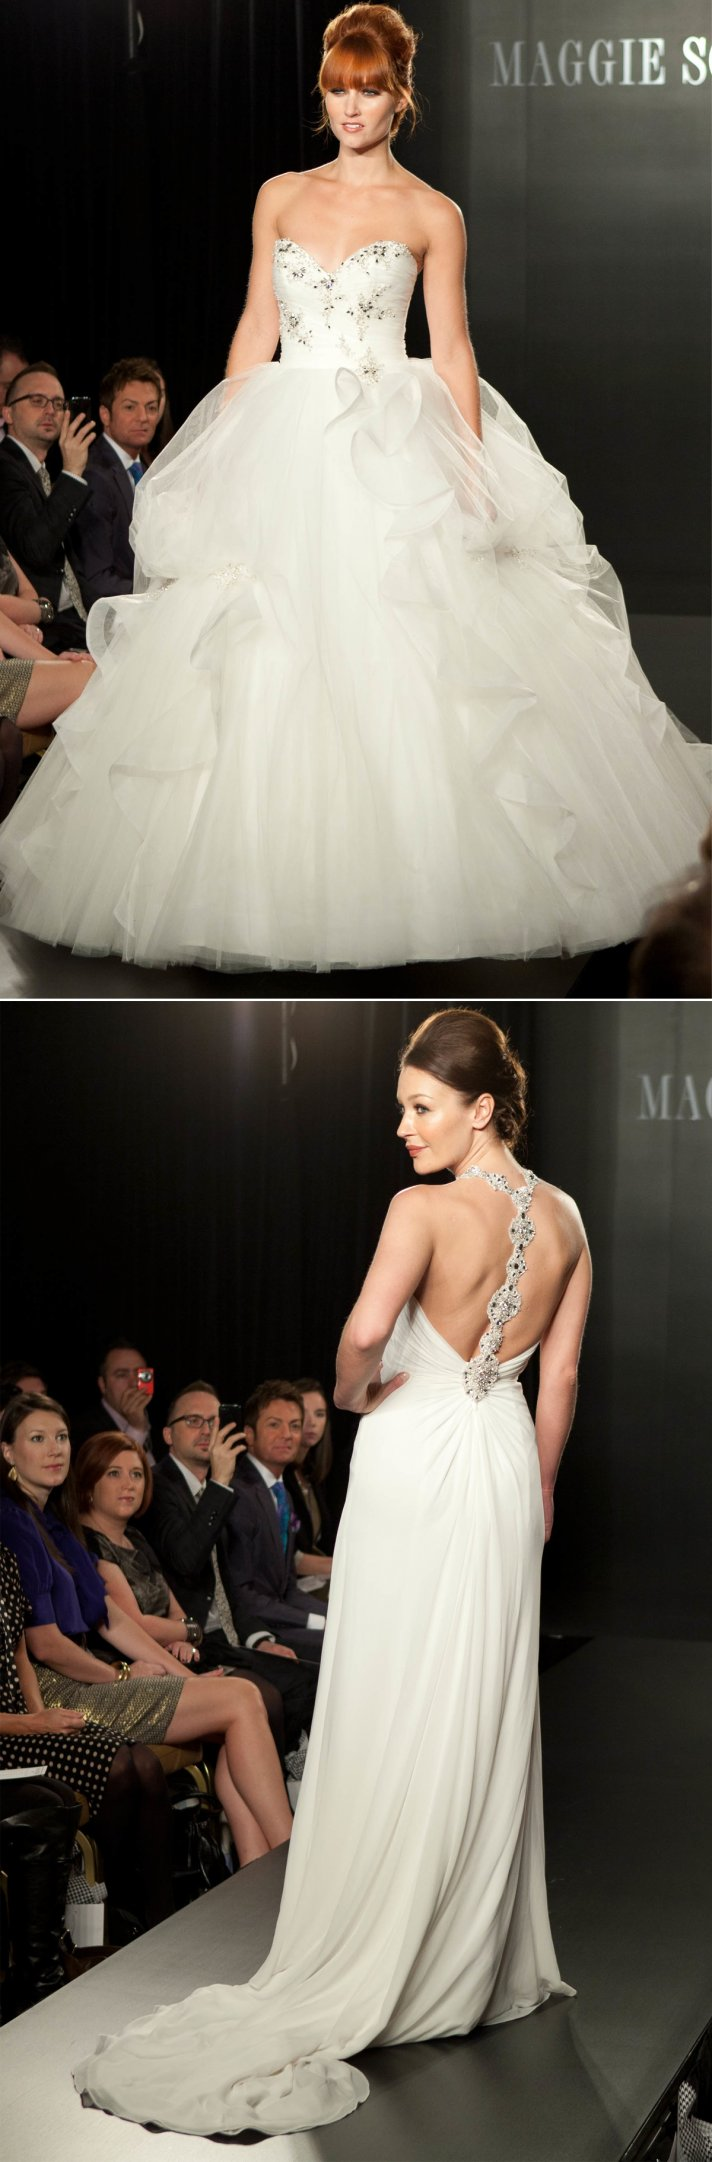 maggie sottero wedding dress beaded 2012 bridal gowns